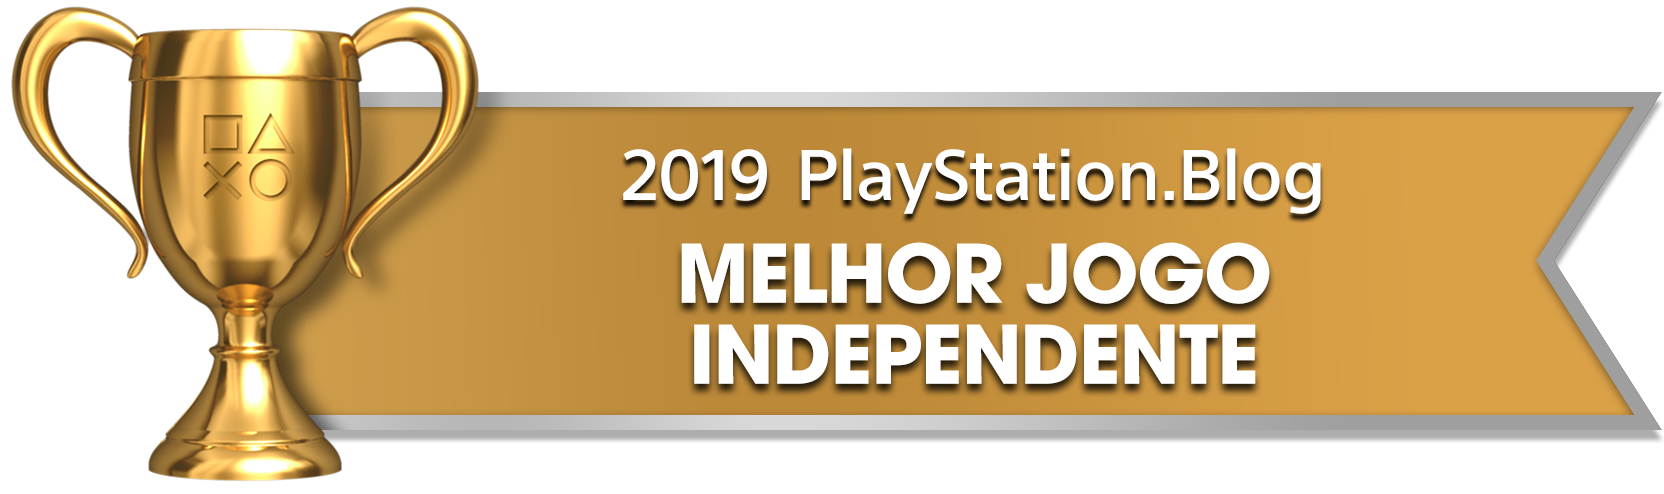 PS Blog Game of the Year 2019 - Best Independent Game - 2 - Gold